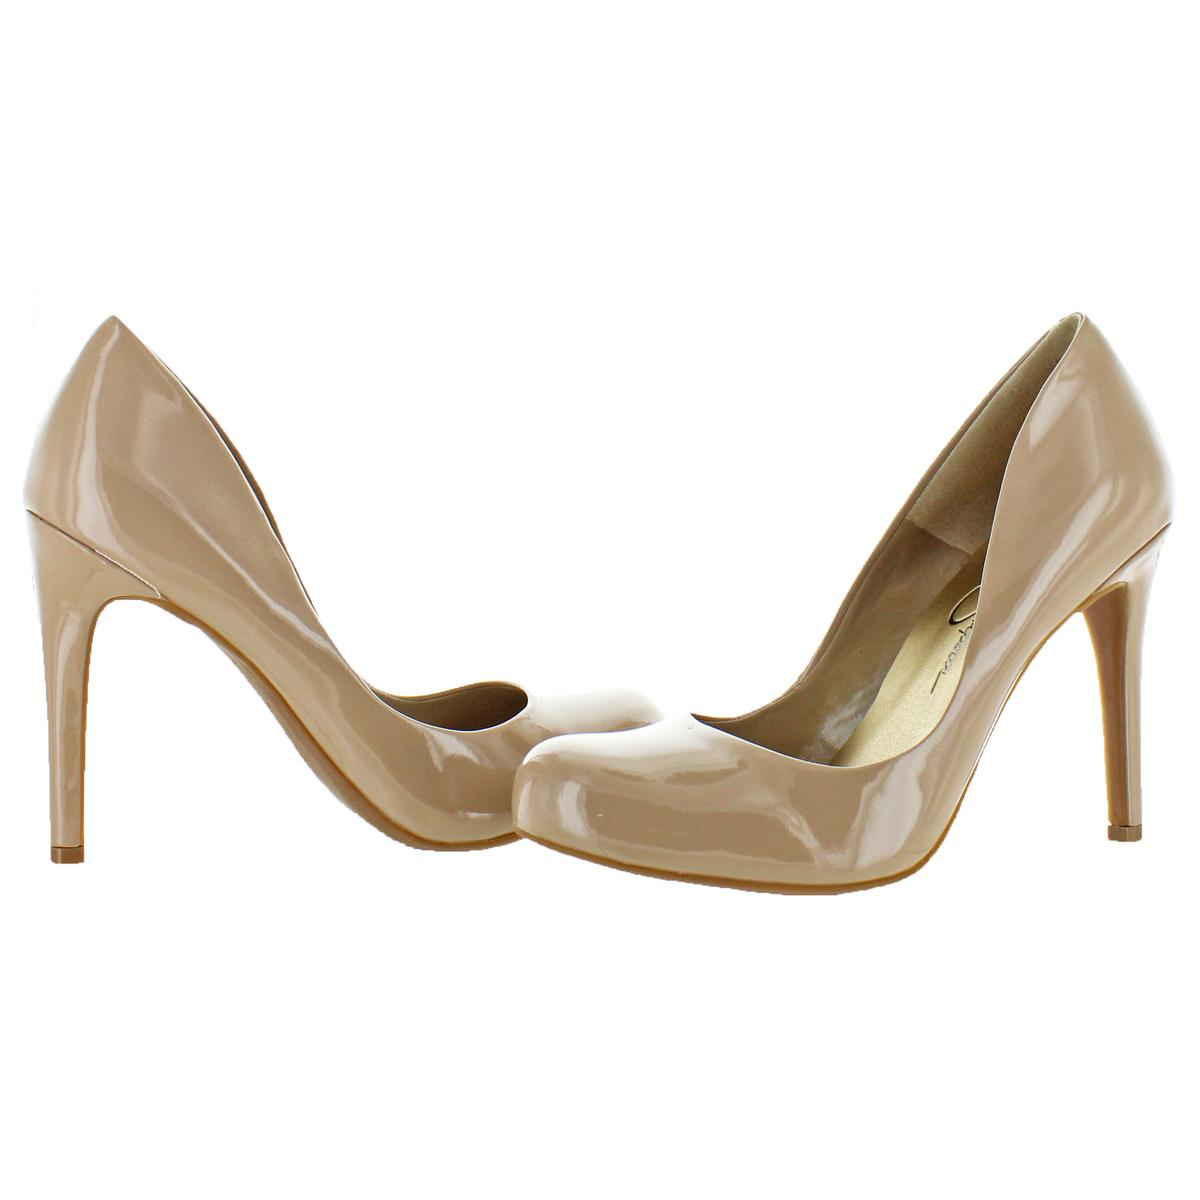 Jessica-Simpson-Women-039-s-Calie-Round-Toe-Classic-Heels-Pumps-Shoes thumbnail 9